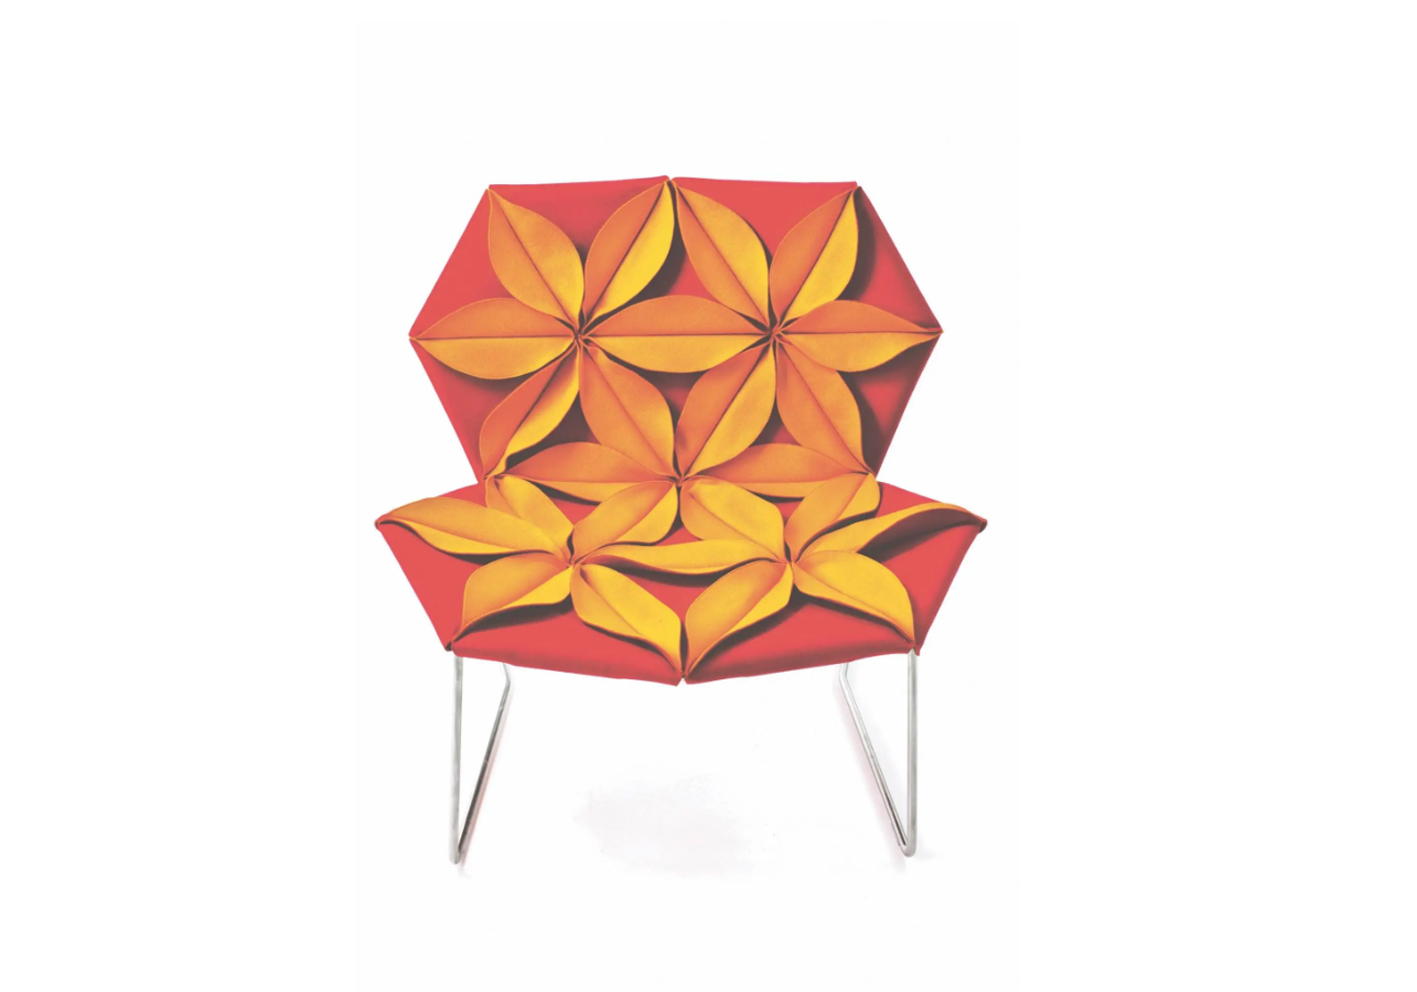 """Equally alluring is Moroso's flamboyantly flowery Antibodi armchair. Its """"petals"""" are made from double-sided materials — felt/baize or baize/leather — to create structural upholstery fixed to a stainless-steel frame."""